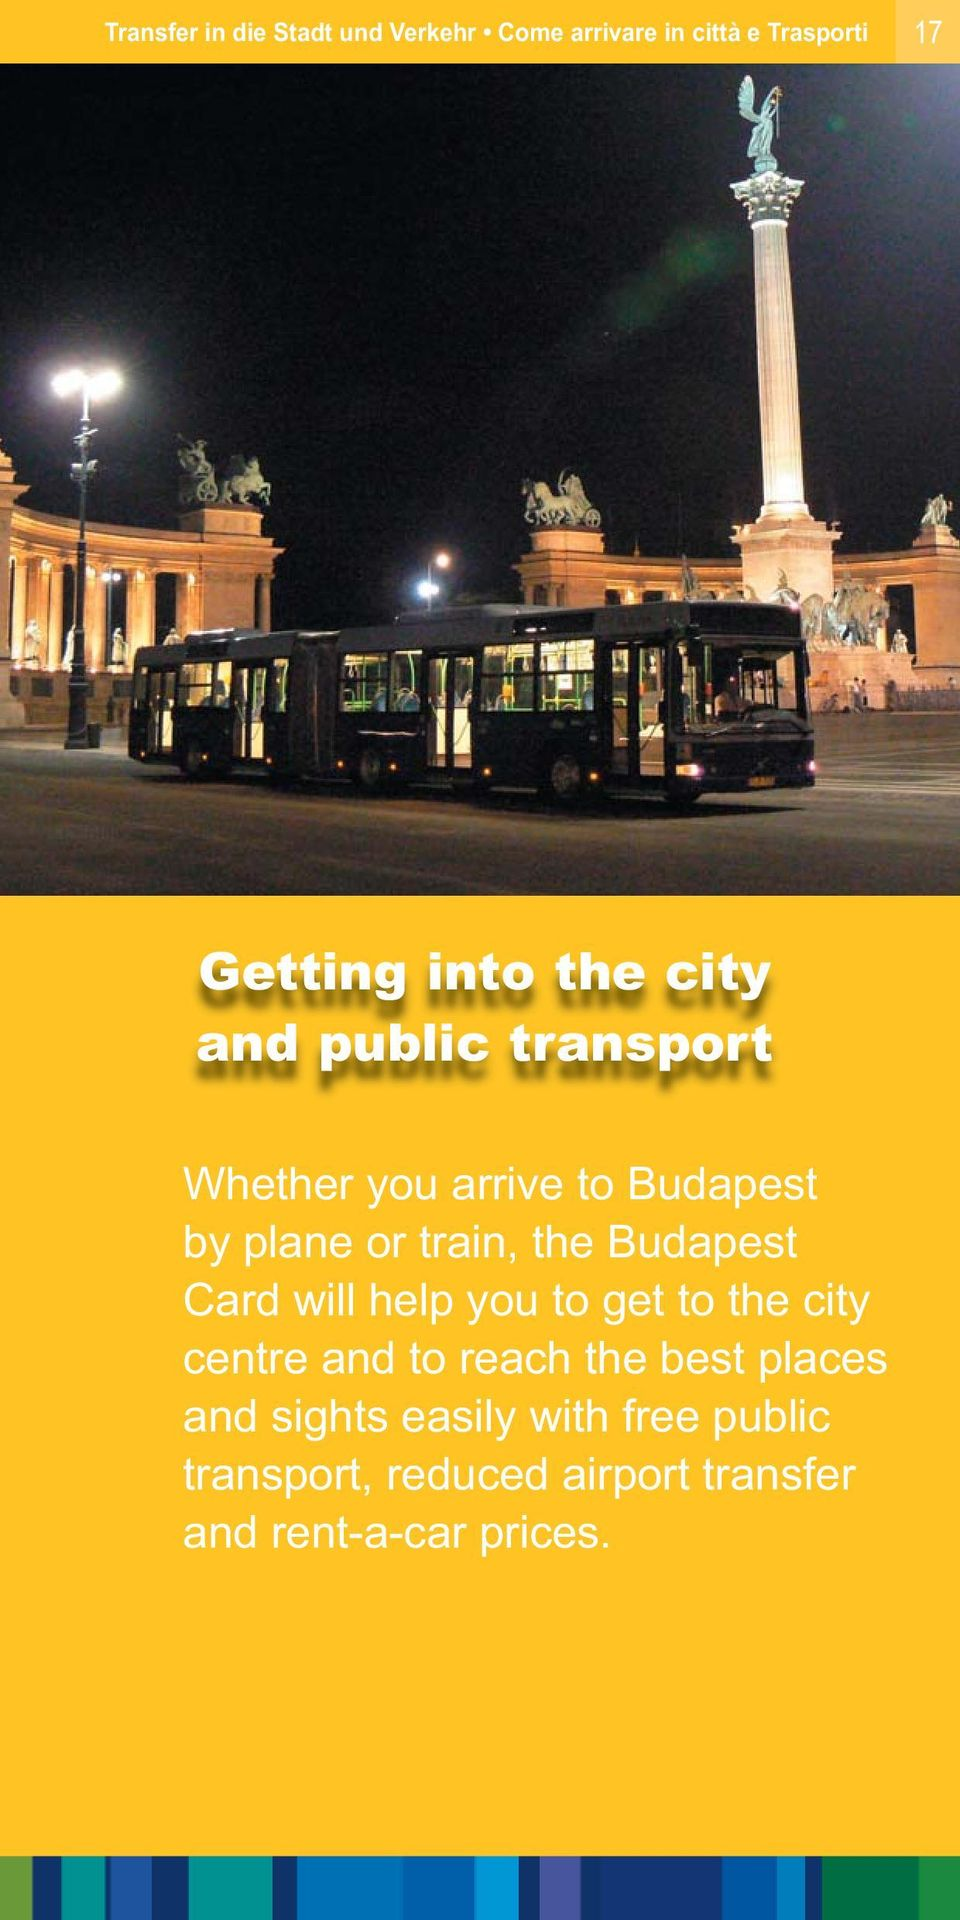 Budapest Card will help you to get to the city centre and to reach the best places and